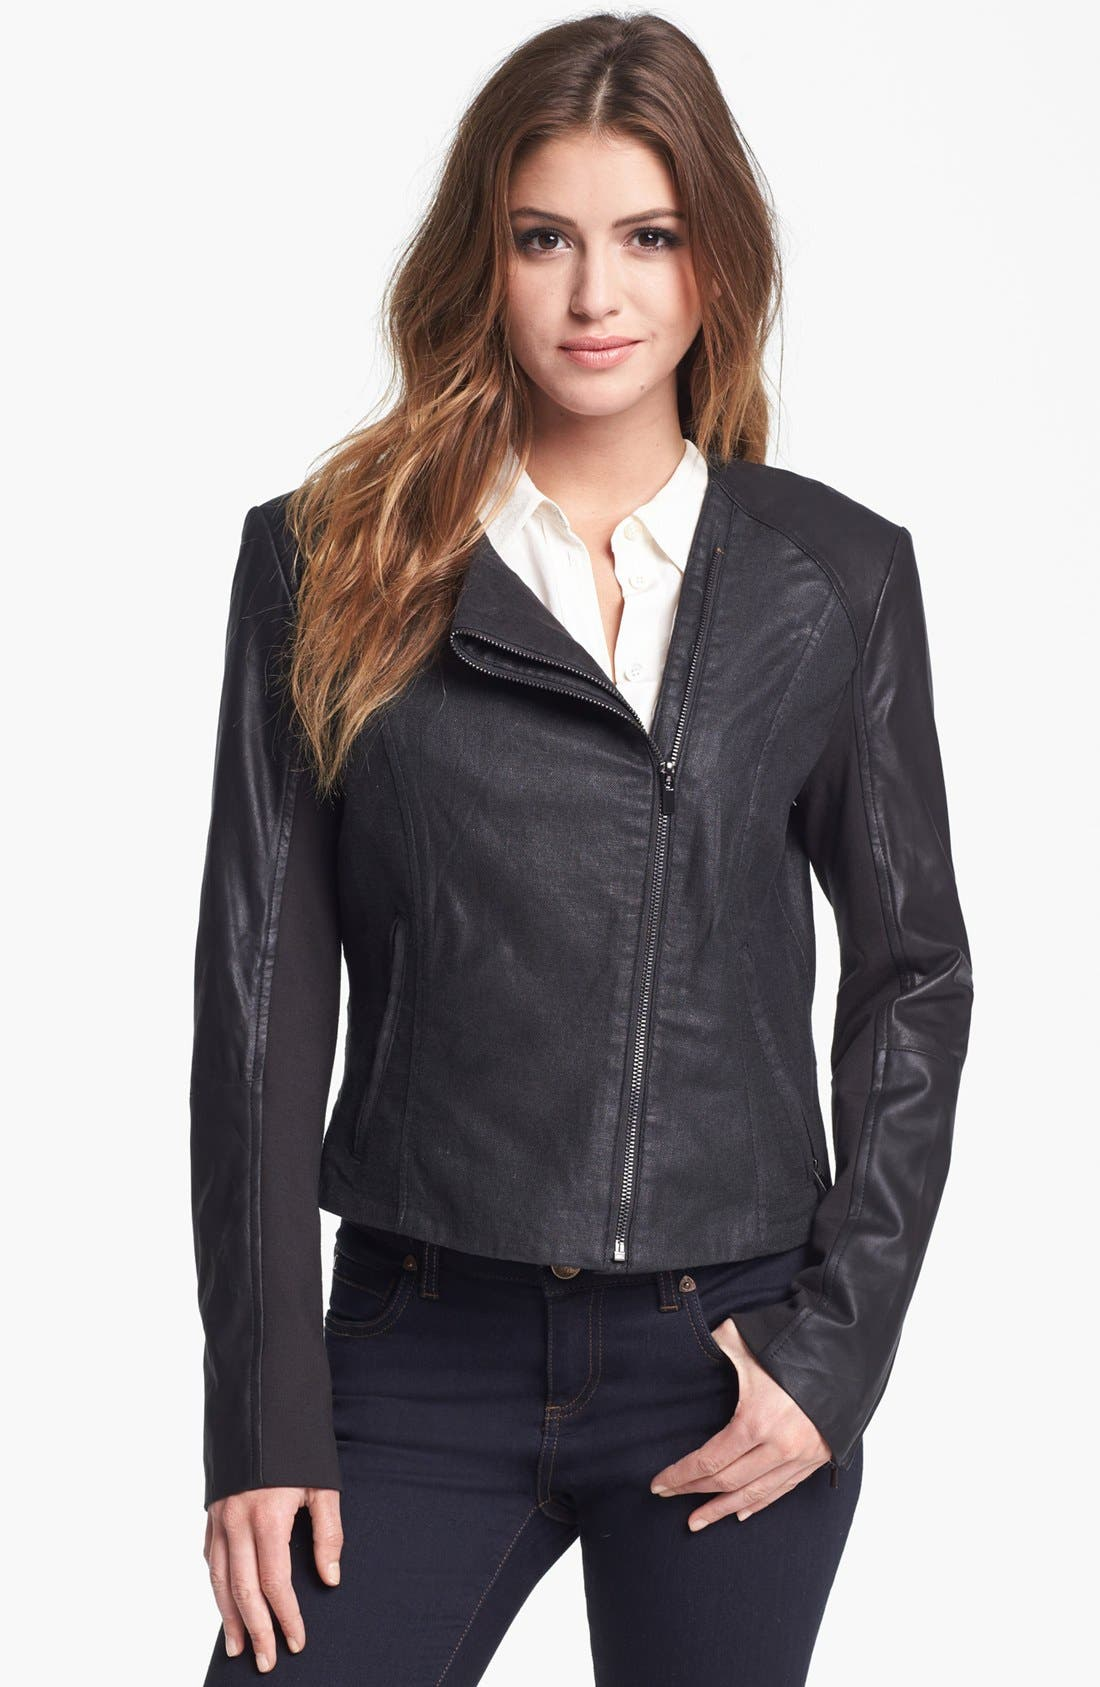 Alternate Image 1 Selected - LaMarque Coated Moto Jacket with Leather Sleeves